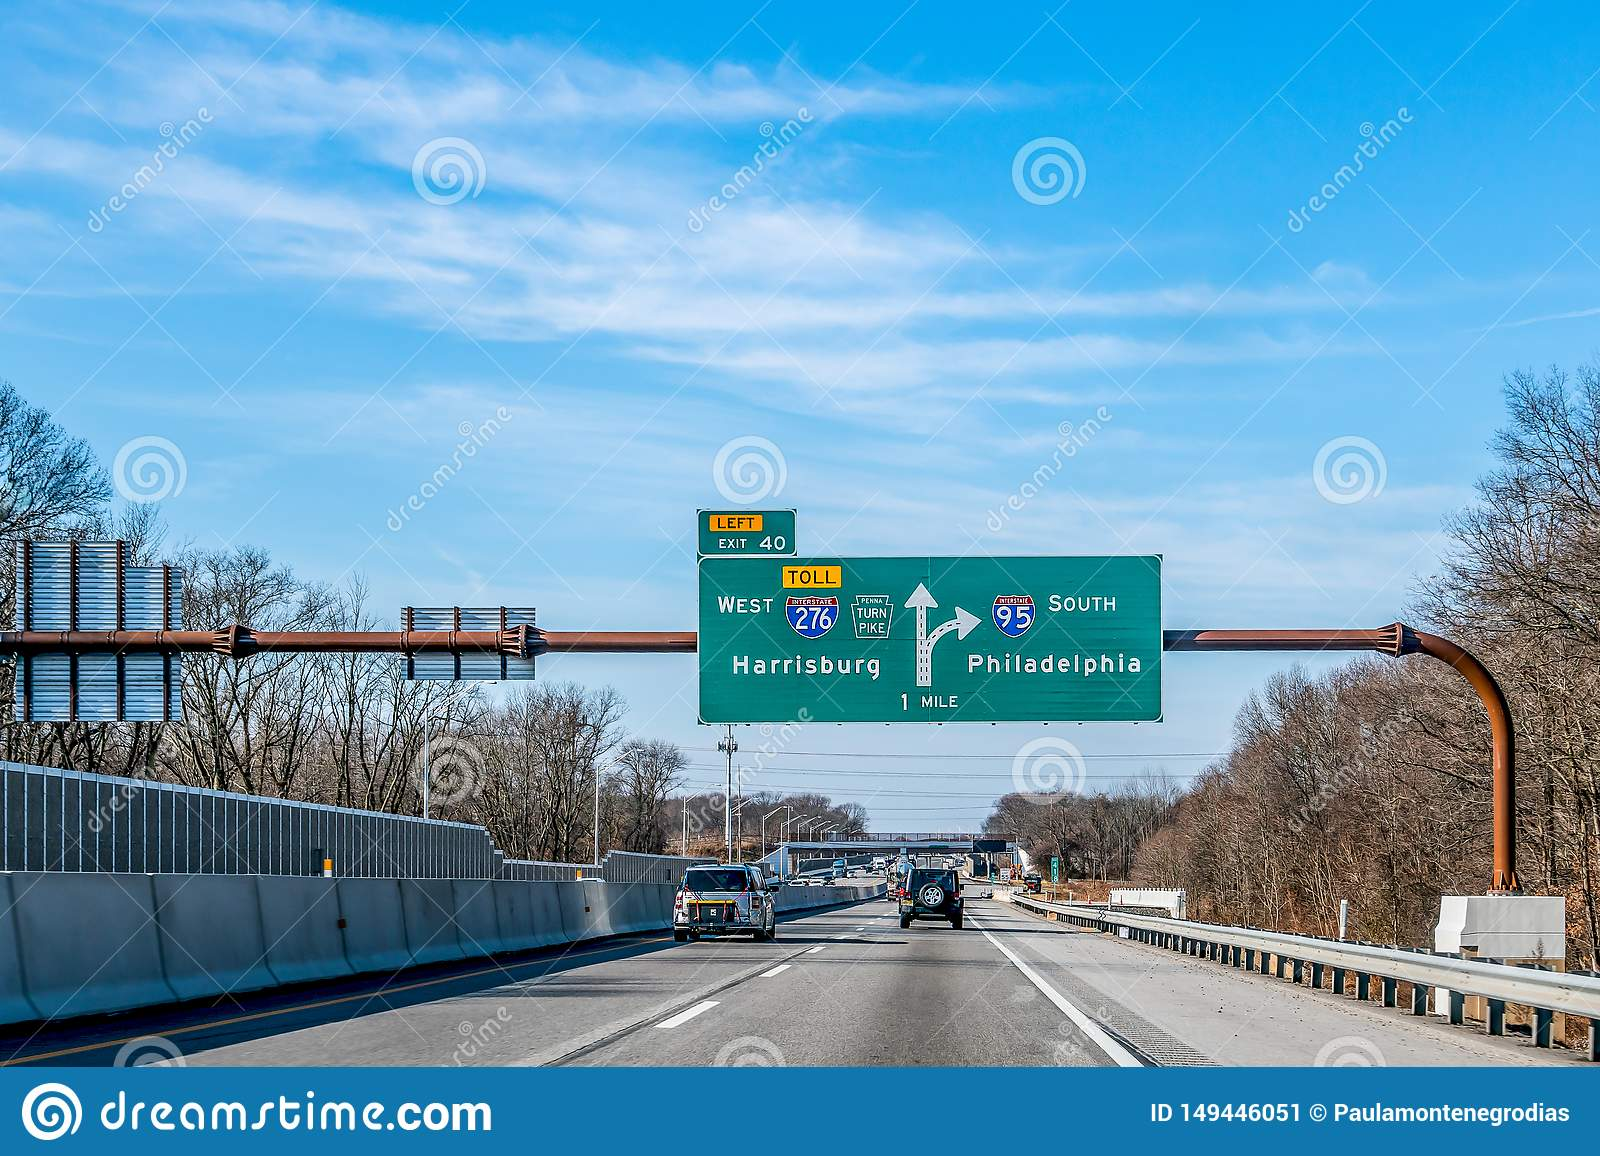 Philadelphia, Pennsylvania, USA - December, 2018 - Signs with directions to West Harrisburg and South Philadelphia